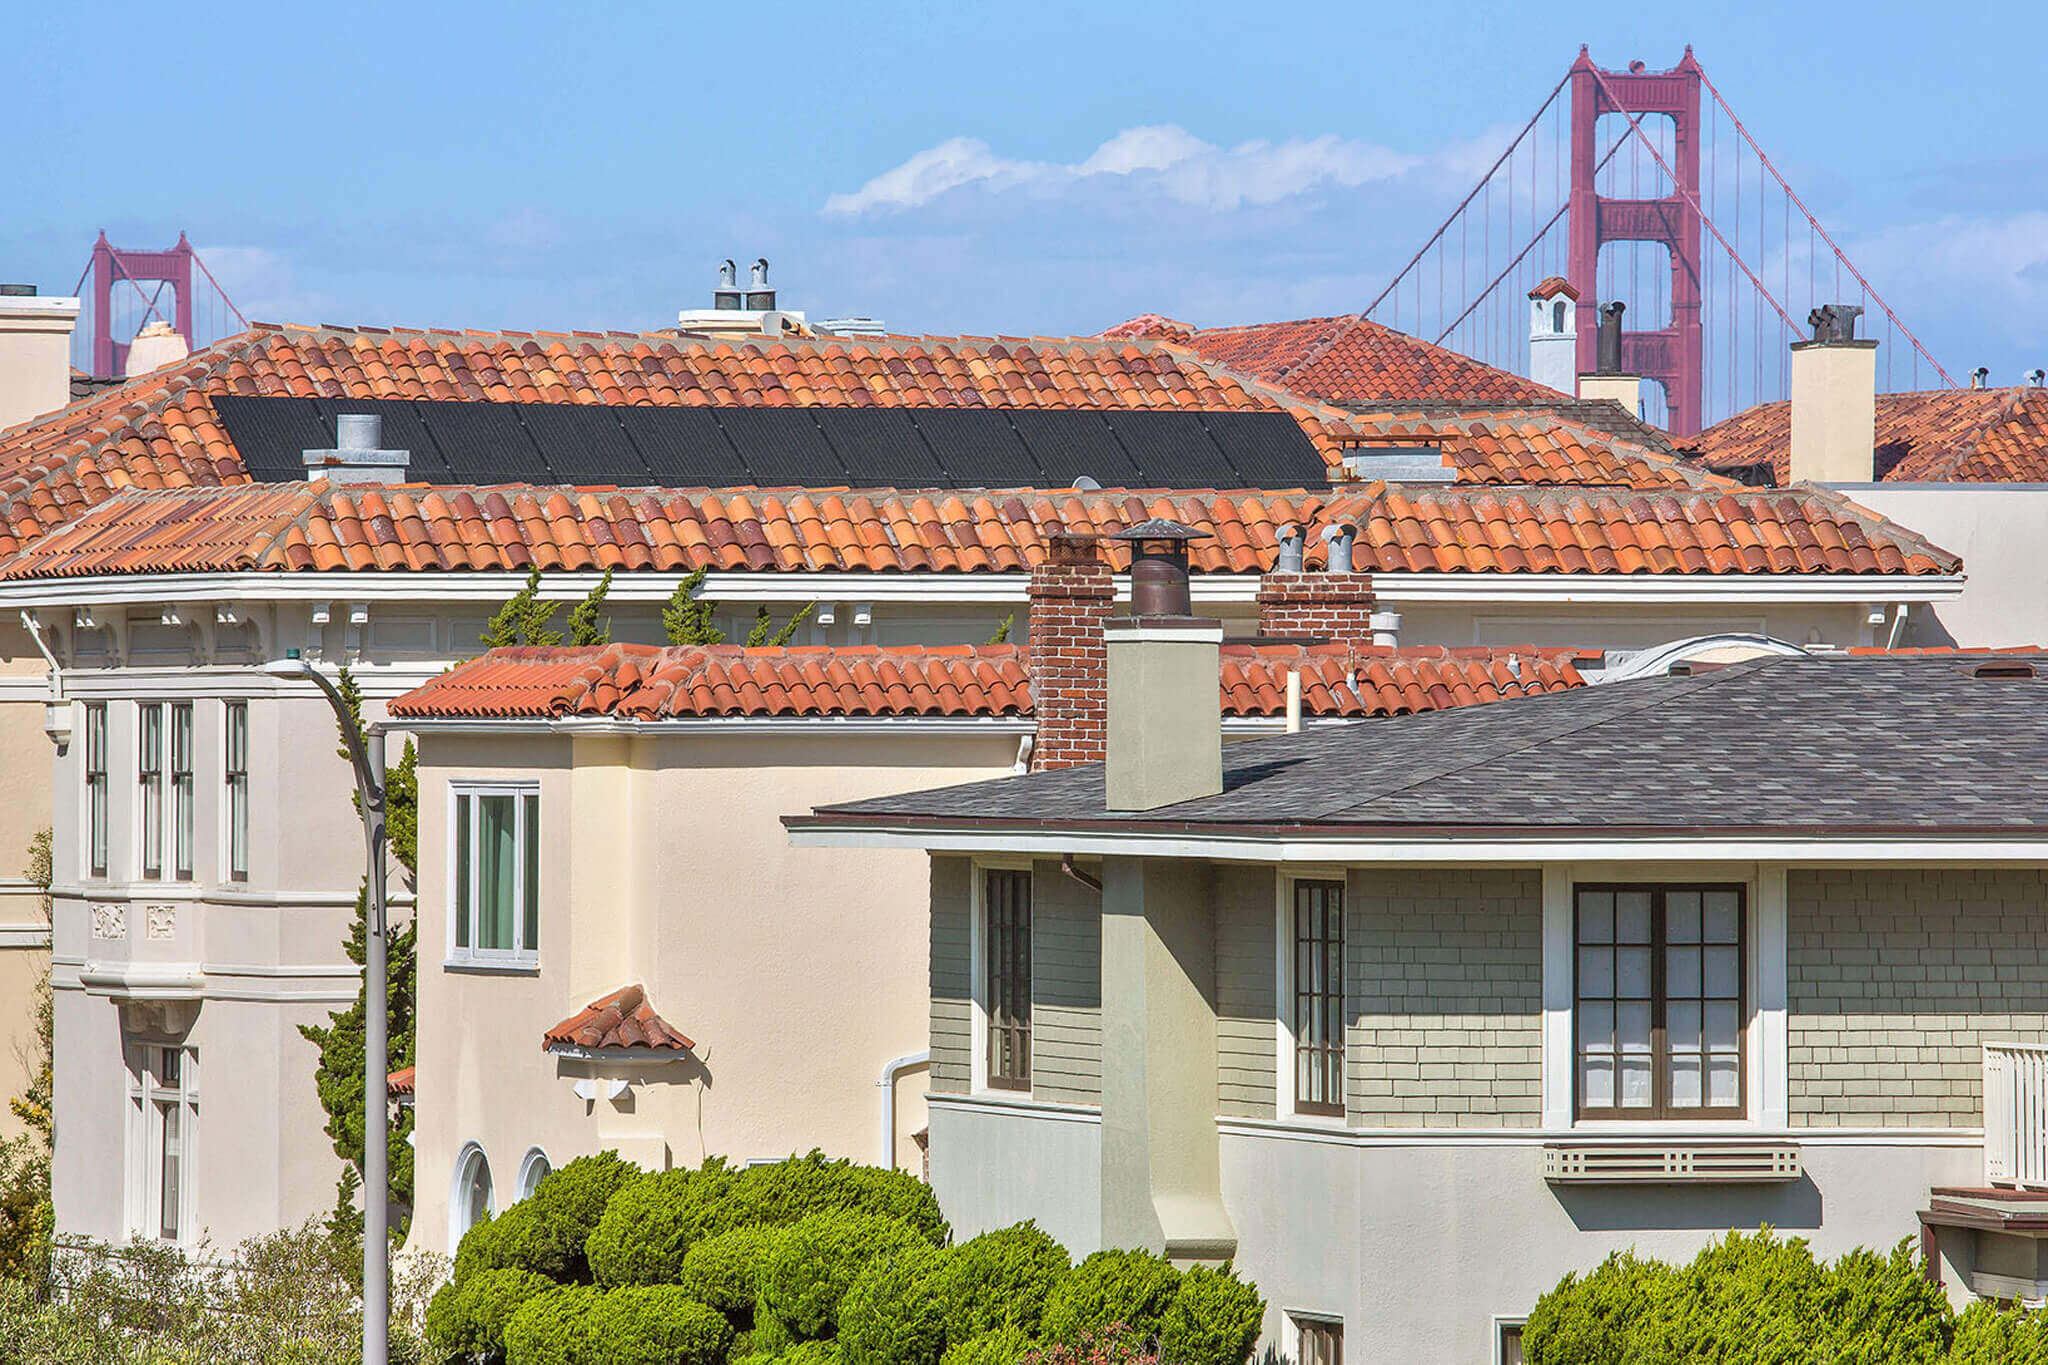 View of Golden Gate Bridge from Sea Cliff Neighborhood